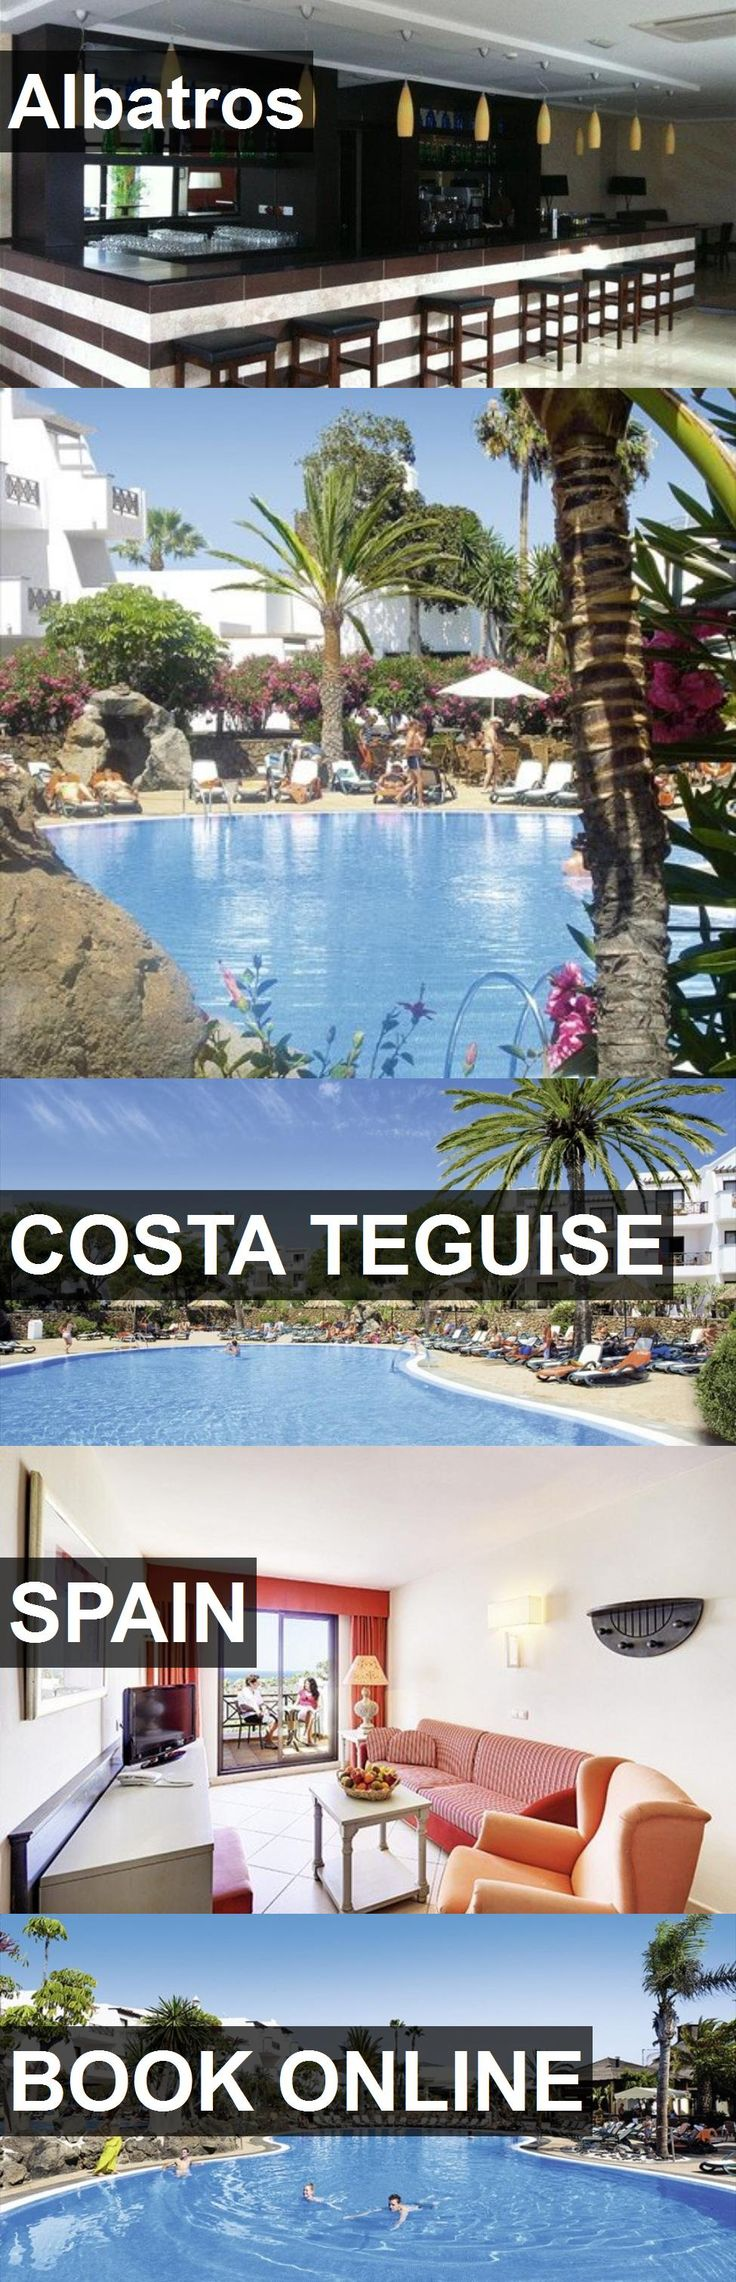 Hotel Albatros in Costa Teguise, Spain. For more information, photos, reviews and best prices please follow the link. #Spain #CostaTeguise #travel #vacation #hotel